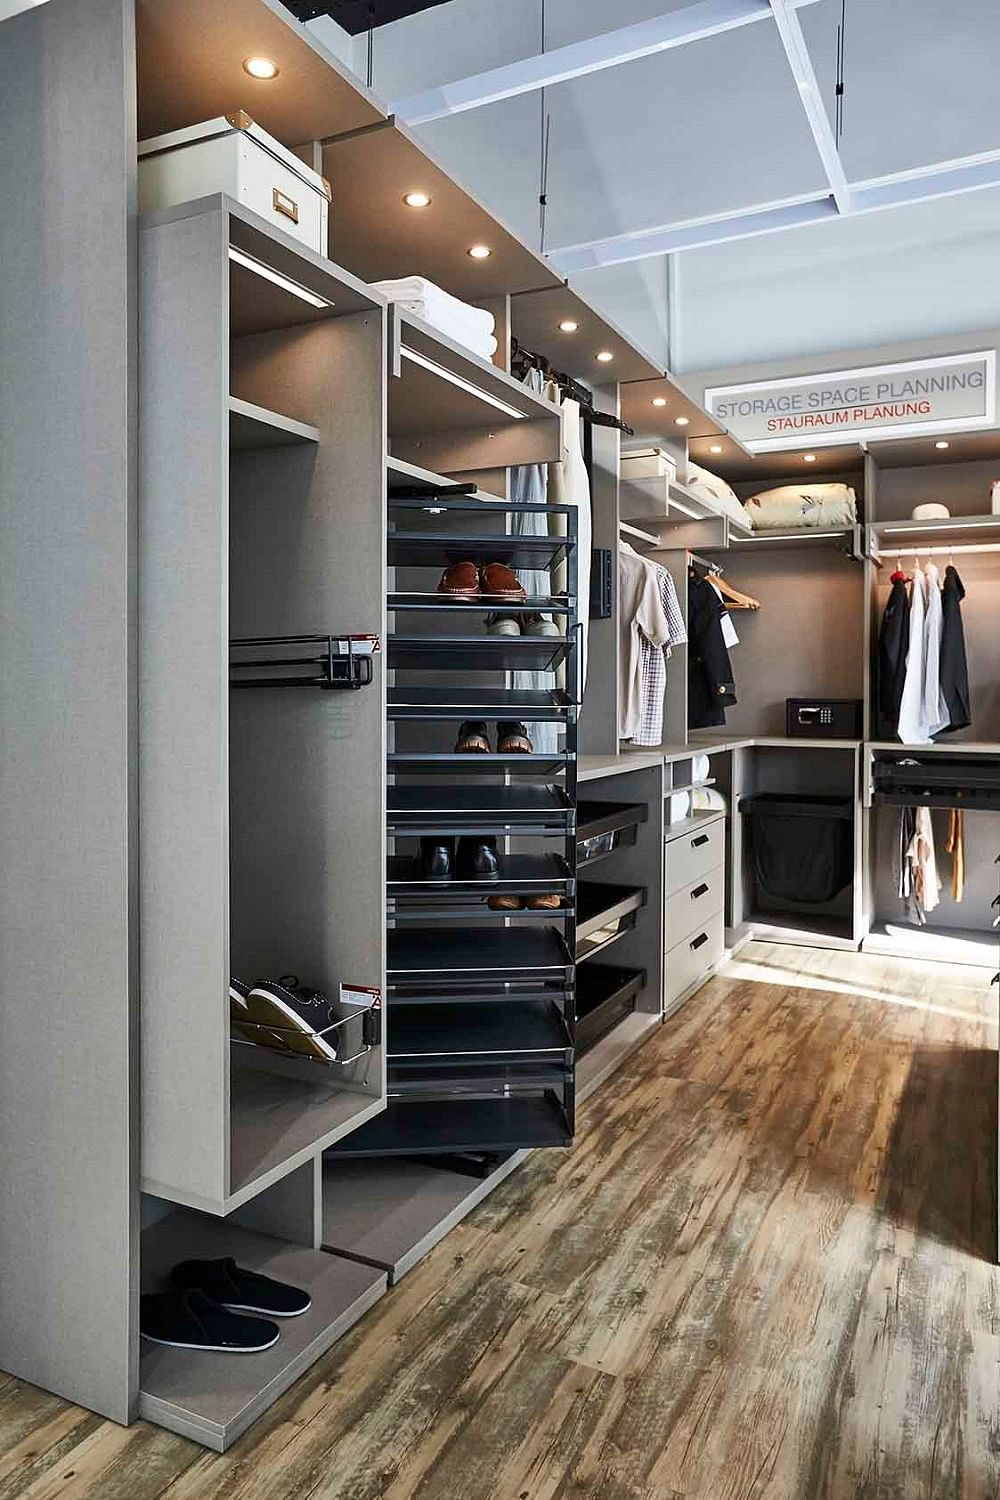 For Both Walk In And Closed Wardrobes, From Rotatable Swivel Shoe Racks And  Pull Out Mirrors To Integrated Ironing Boards And Rail Spot Lighting, ...